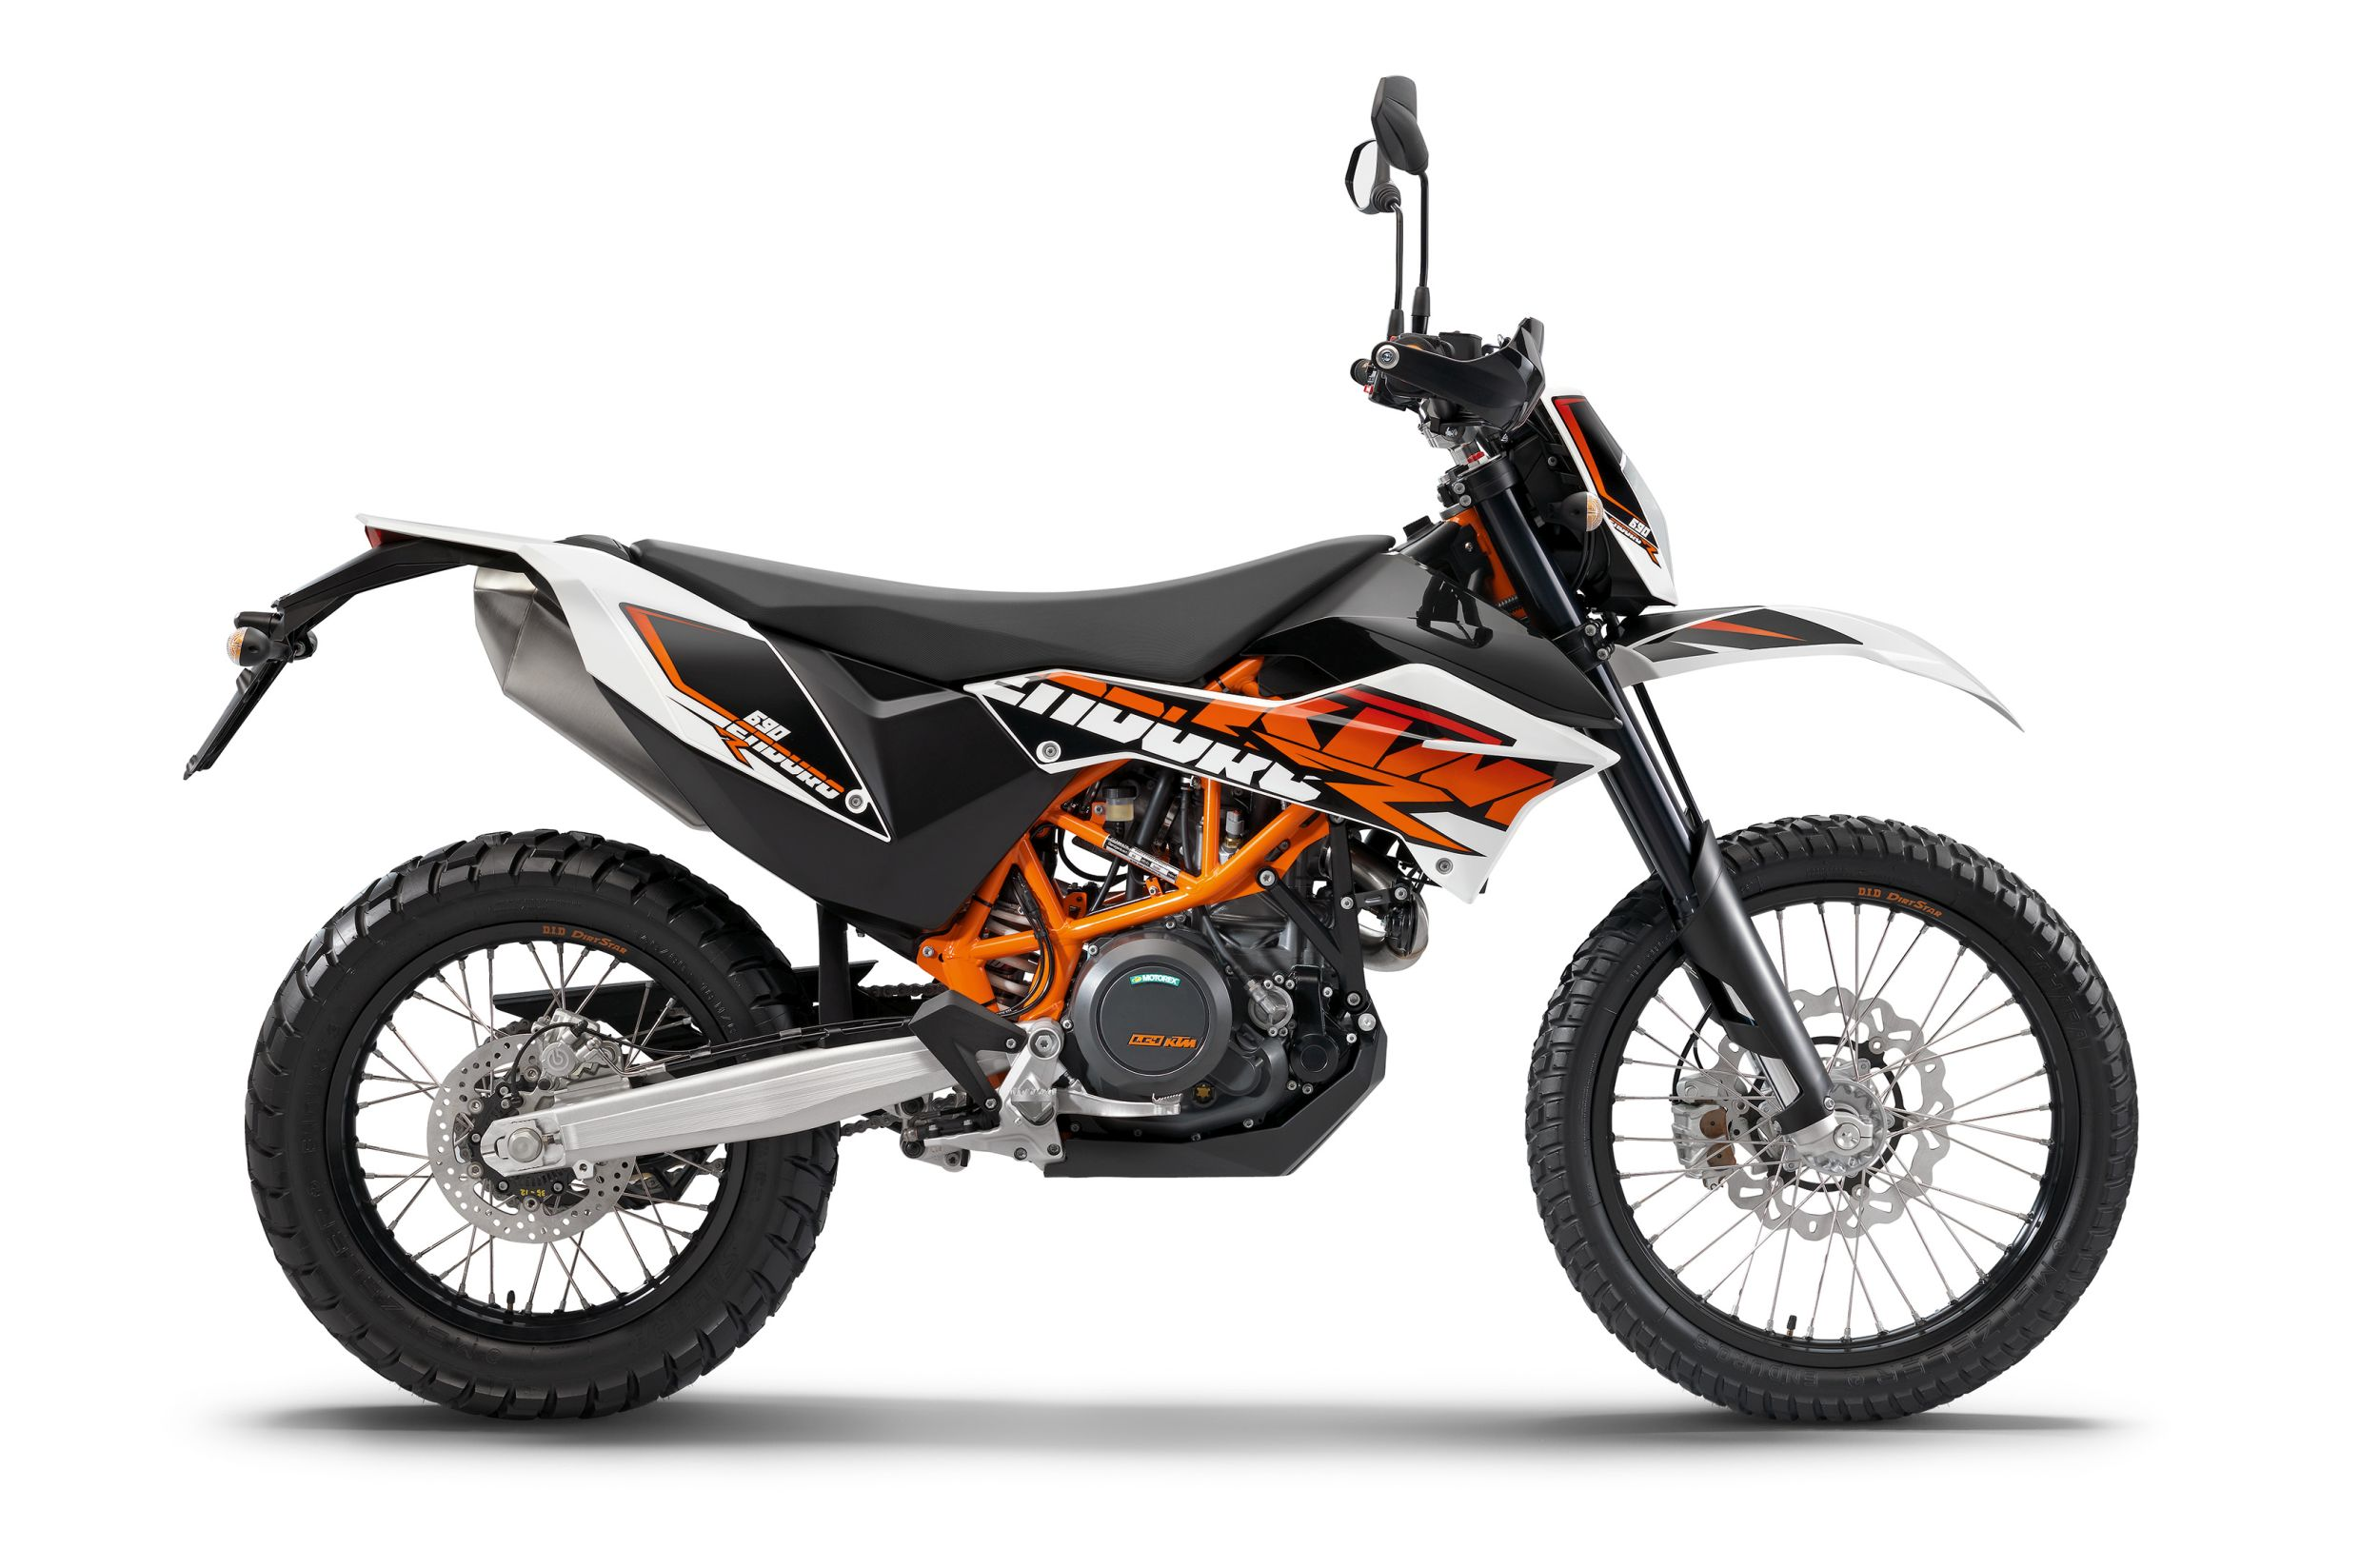 gebrauchte ktm 690 enduro r motorr der kaufen. Black Bedroom Furniture Sets. Home Design Ideas